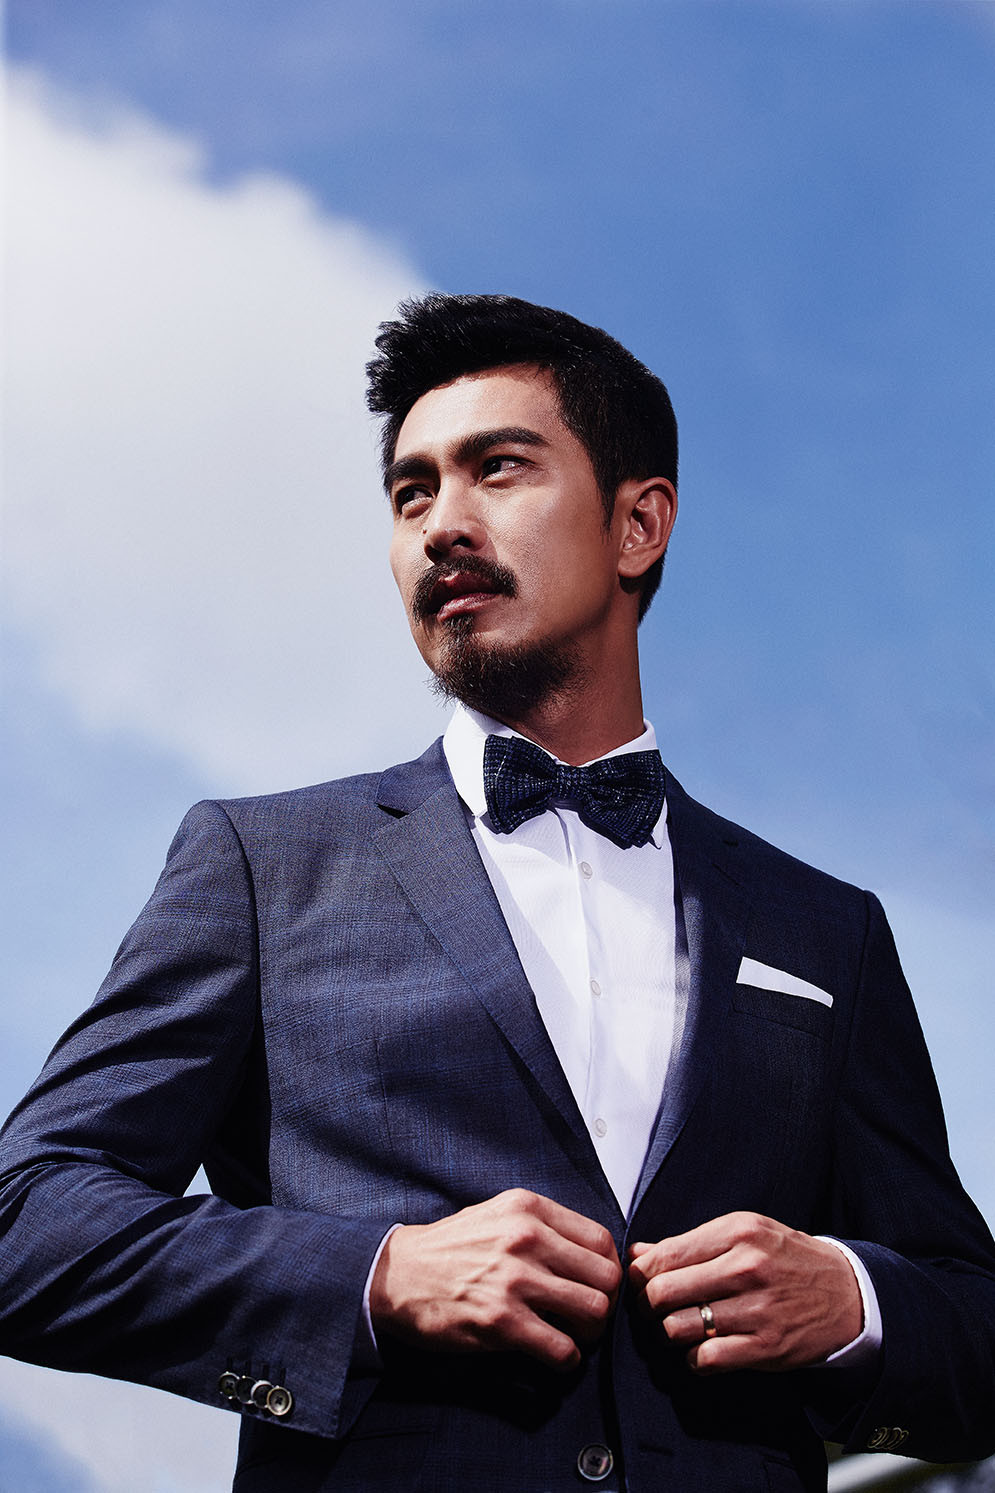 02 - Pierre Png, actor Starred in Crazy Rich Asians